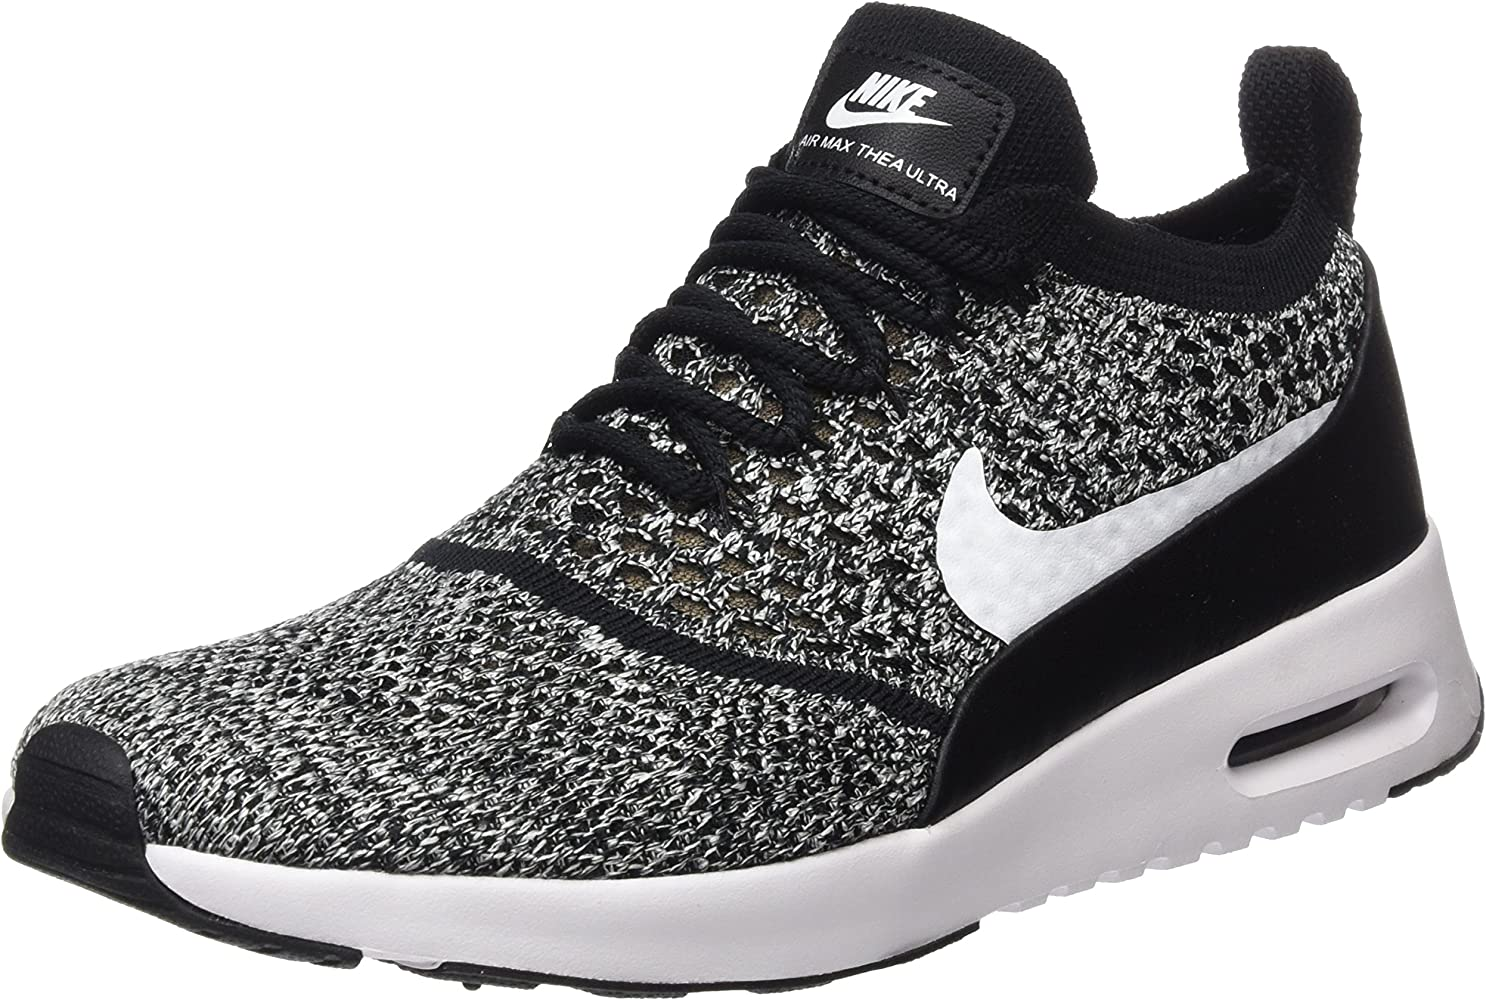 Mujer Zapatillas Mujer Nike Air Max Thea Ultra Fk Sport